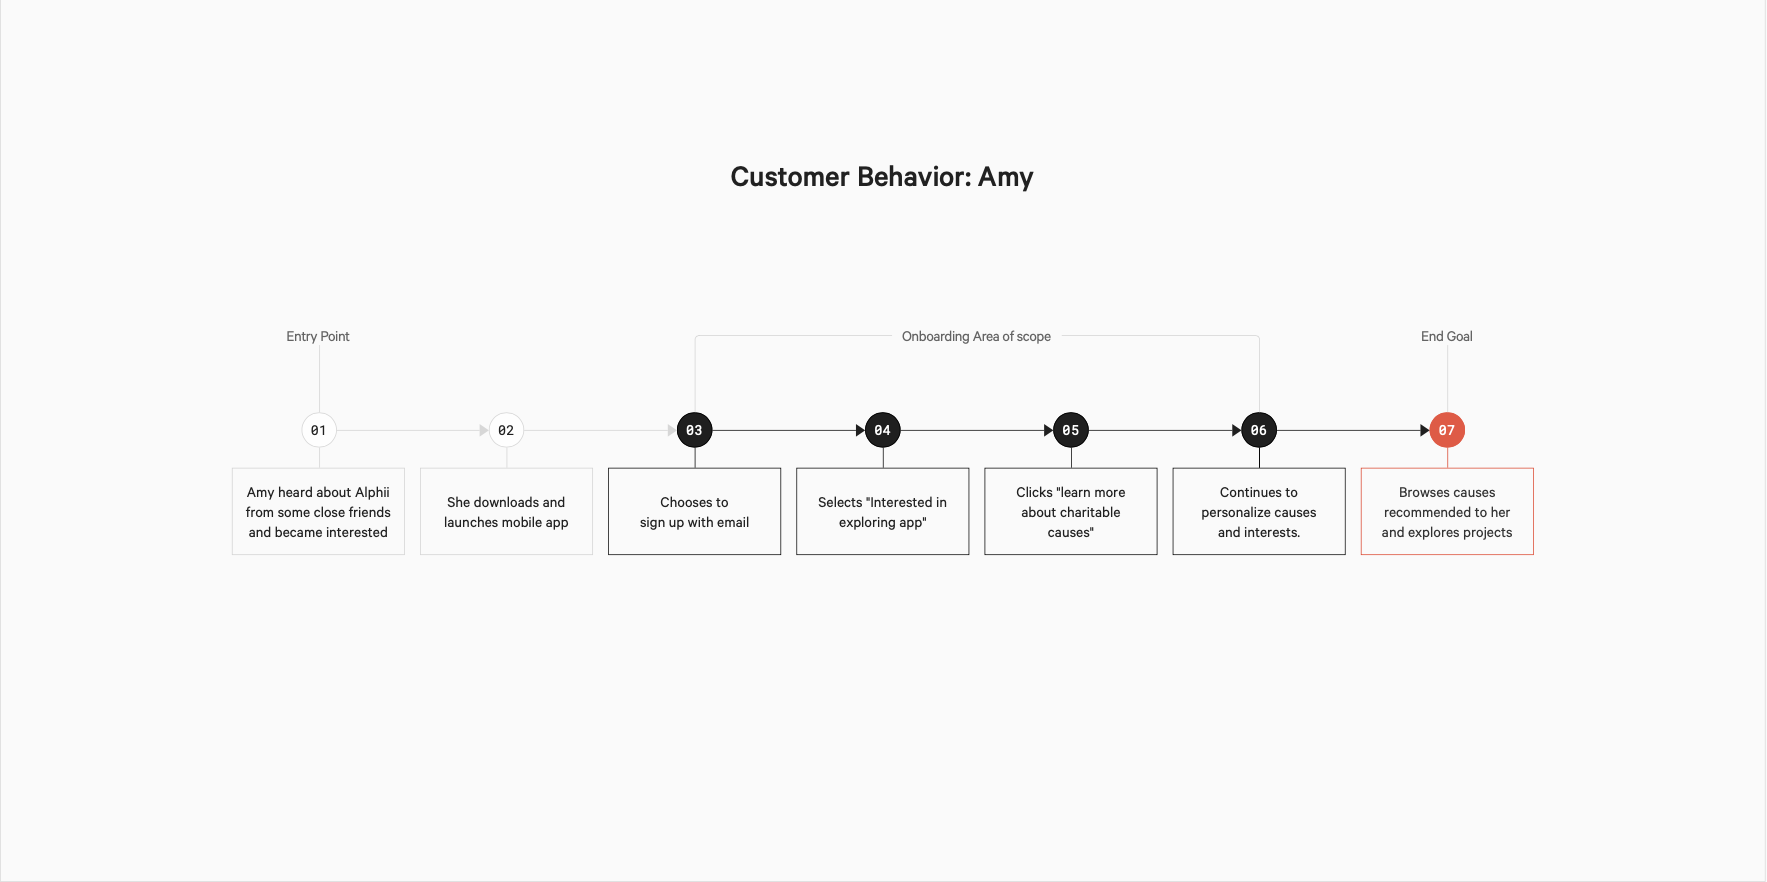 Showcasing Amy's entry point - how she accesses the product and showing how she flow through the app towards her final destination or end goal.